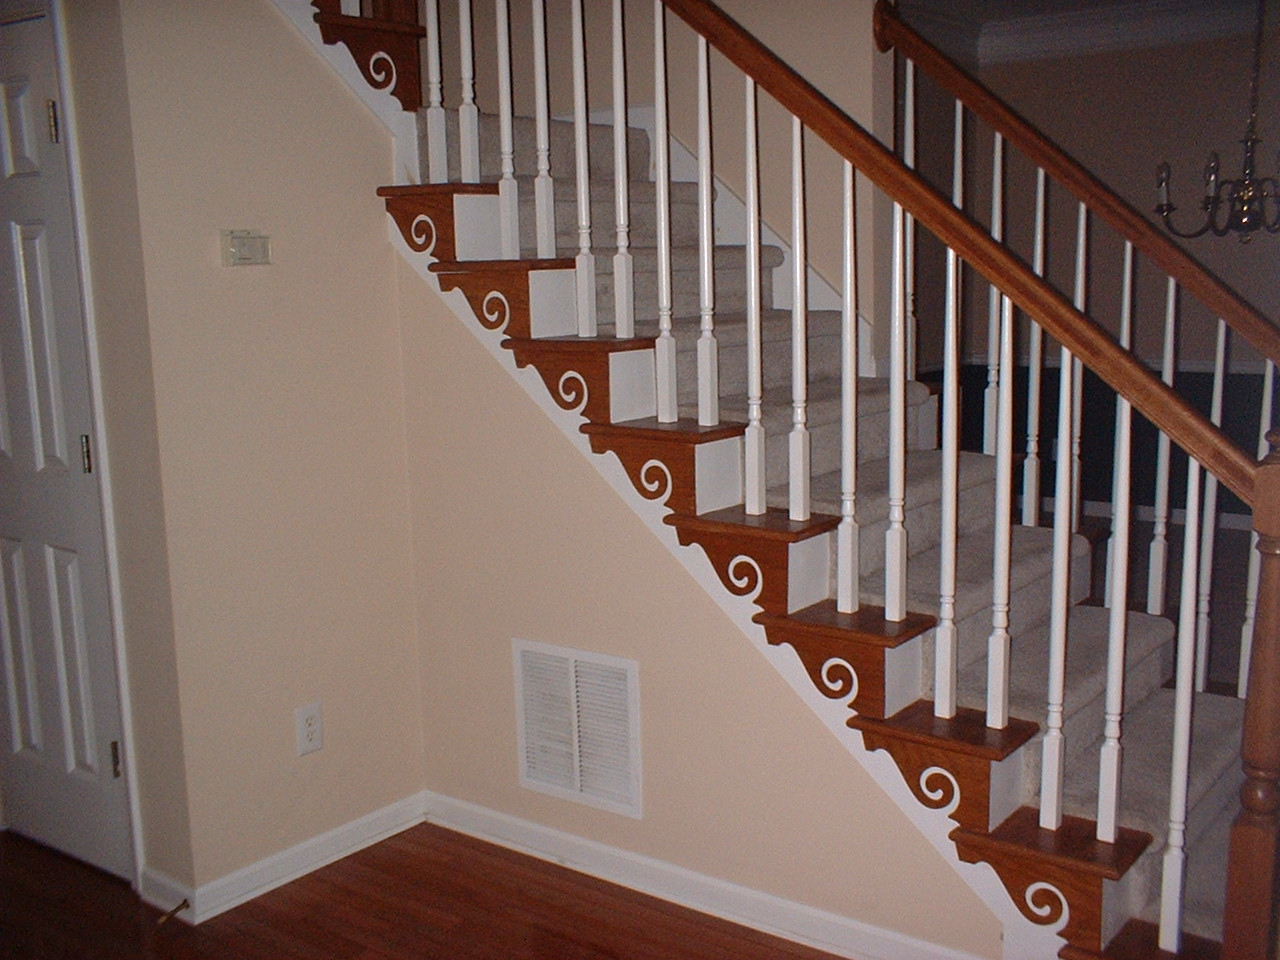 Staircase decorating ideas dream house experience for Home design ideas hallway